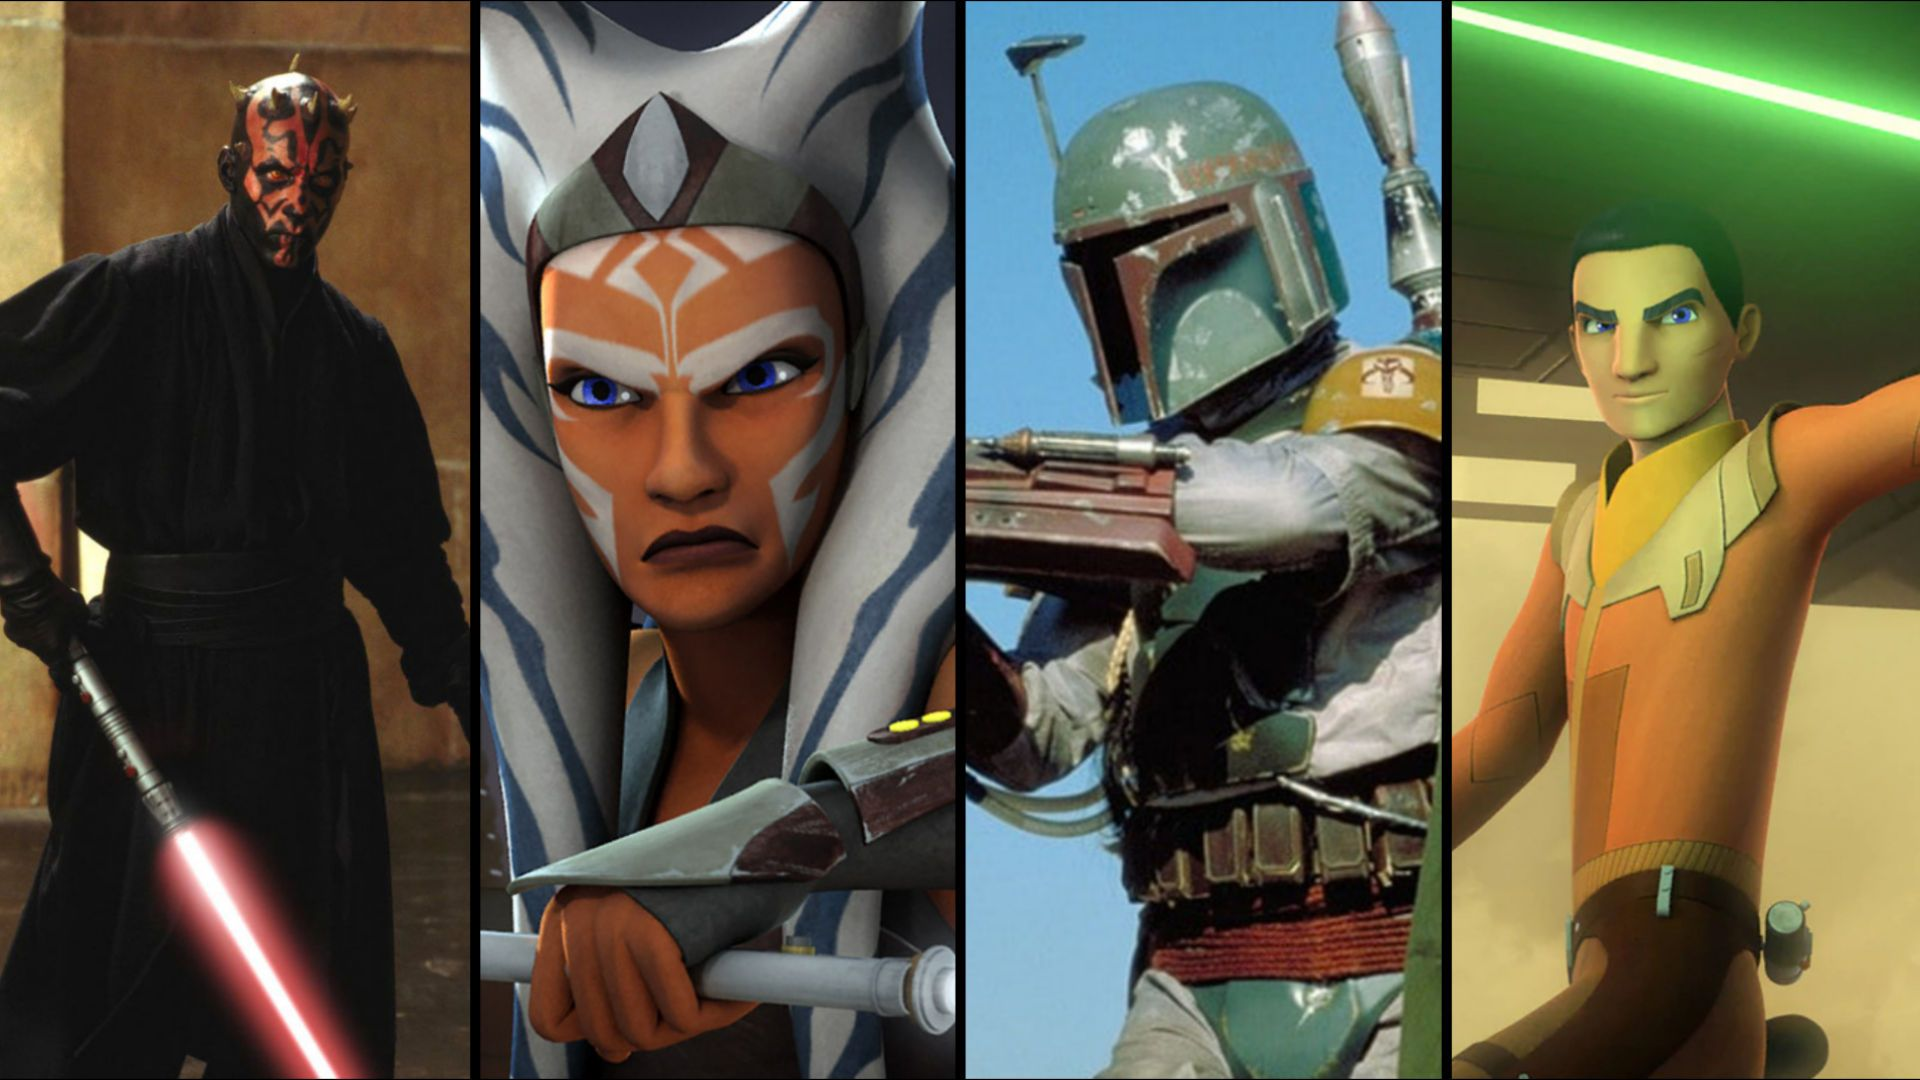 Mandalorian Star Wars Characters Who Can Appear In Season 2